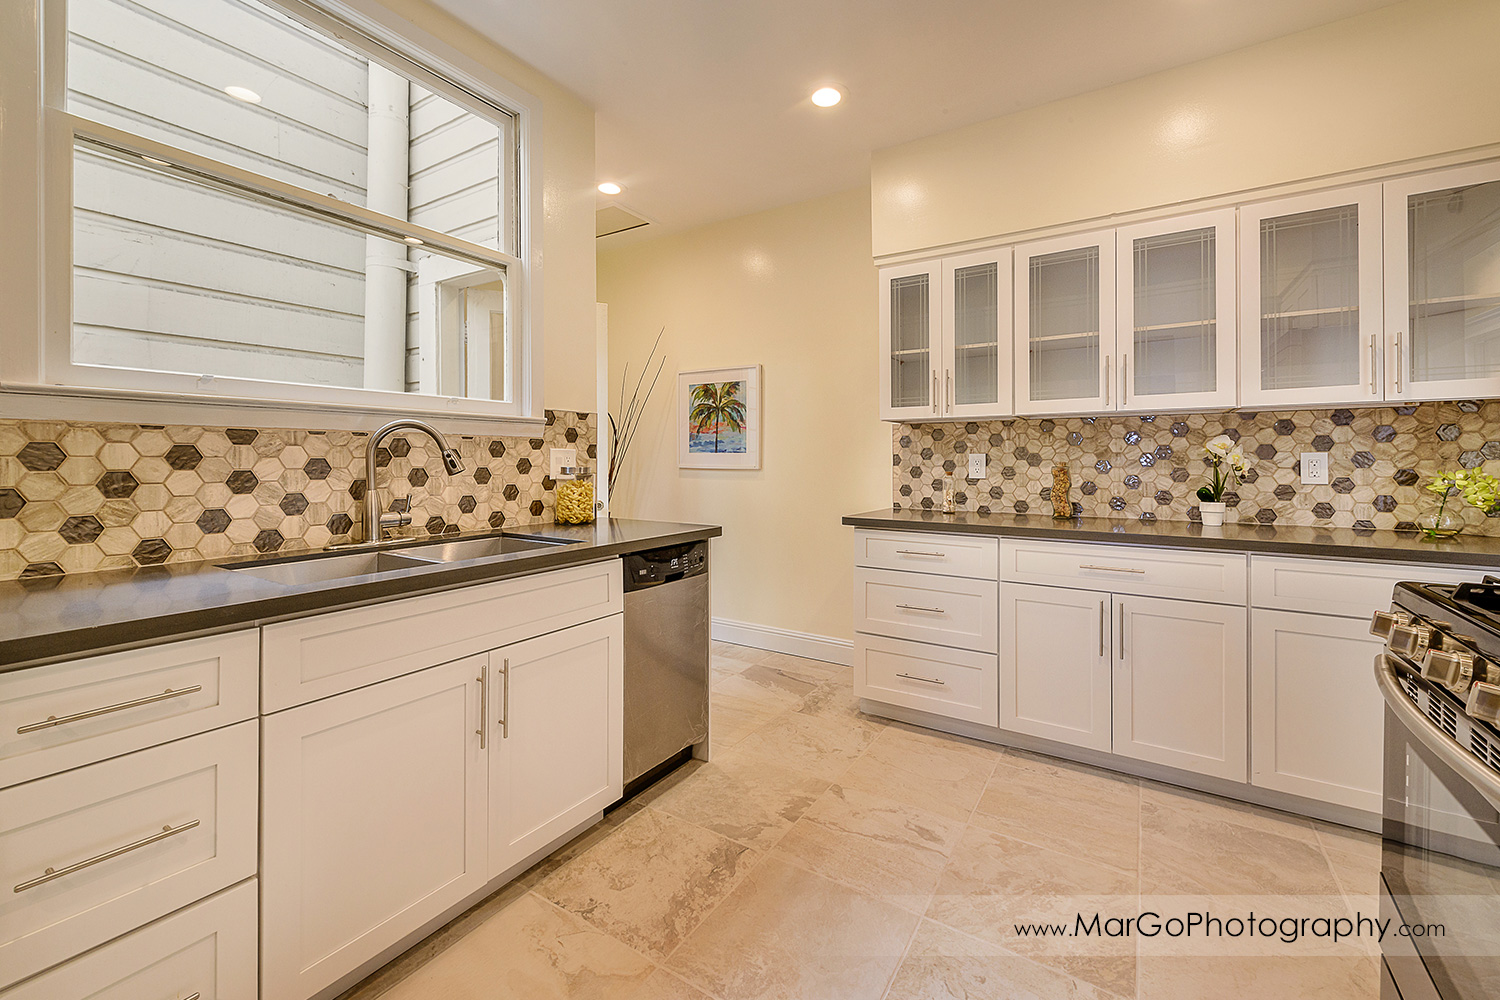 San Francisco house kitchen with white cabinets - real estate photography